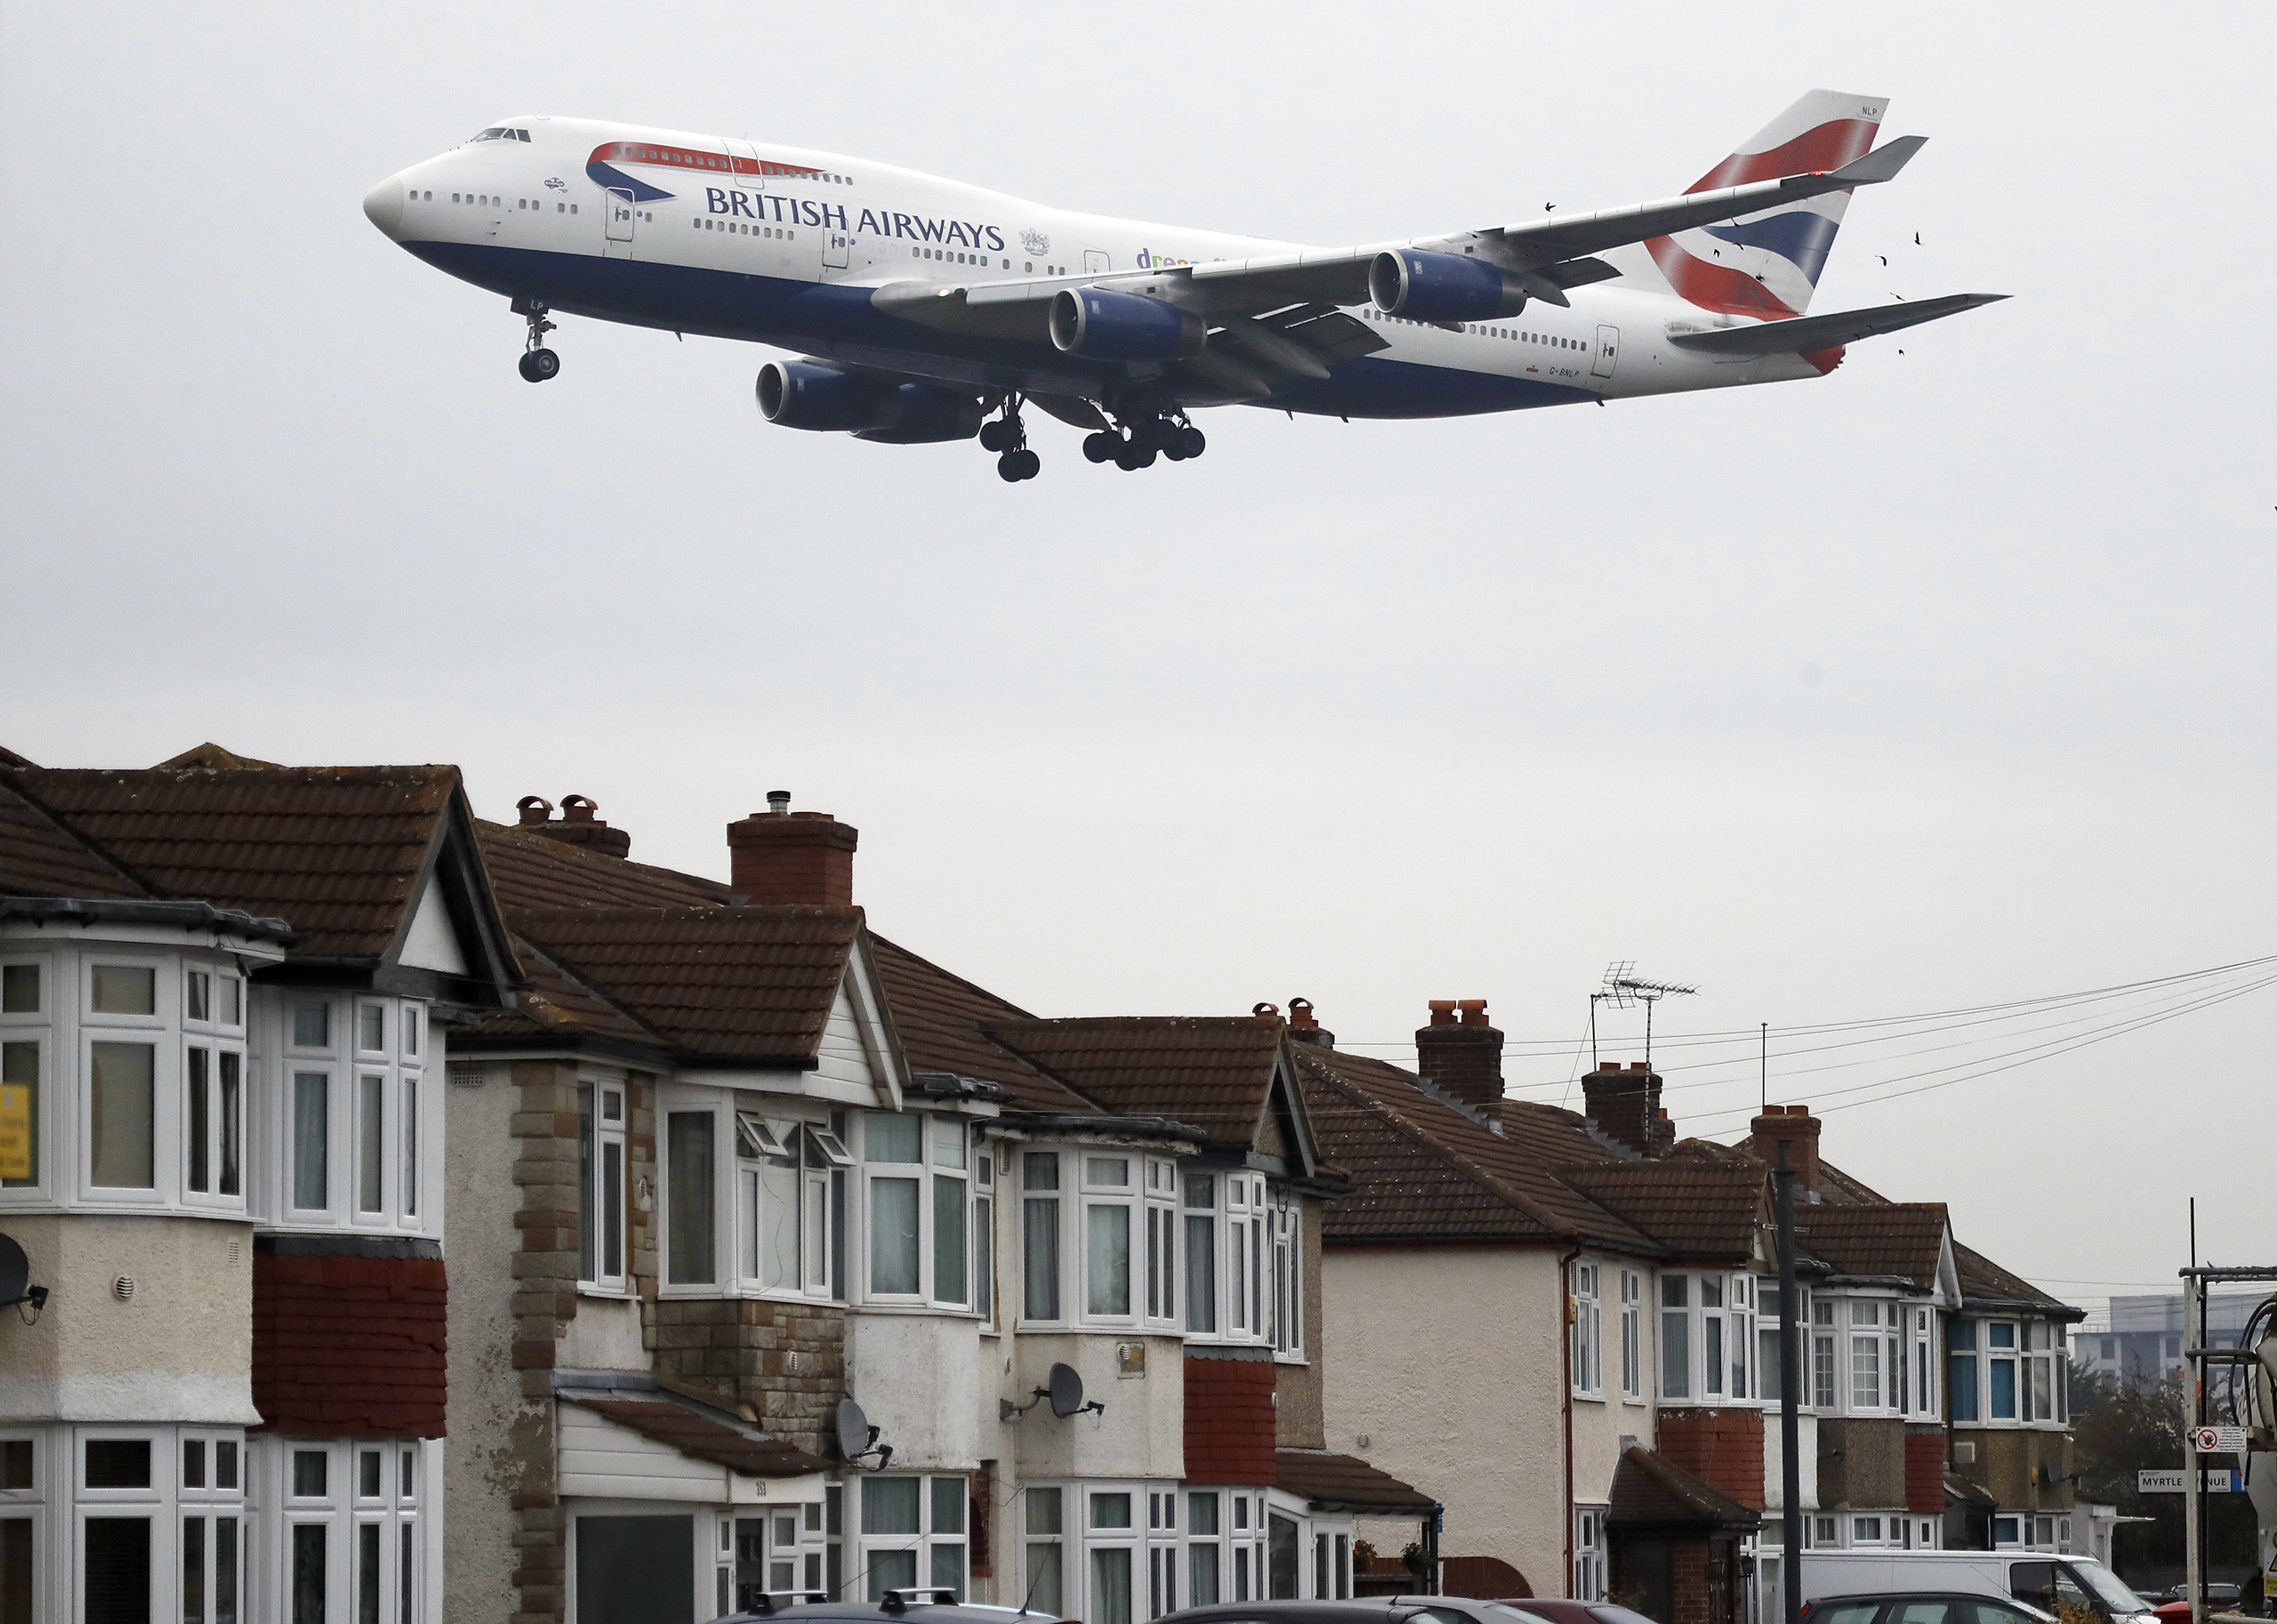 A plane approaches landing over the rooftops of nearby houses at Heathrow Airport in London, on Oct. 25, 2016.